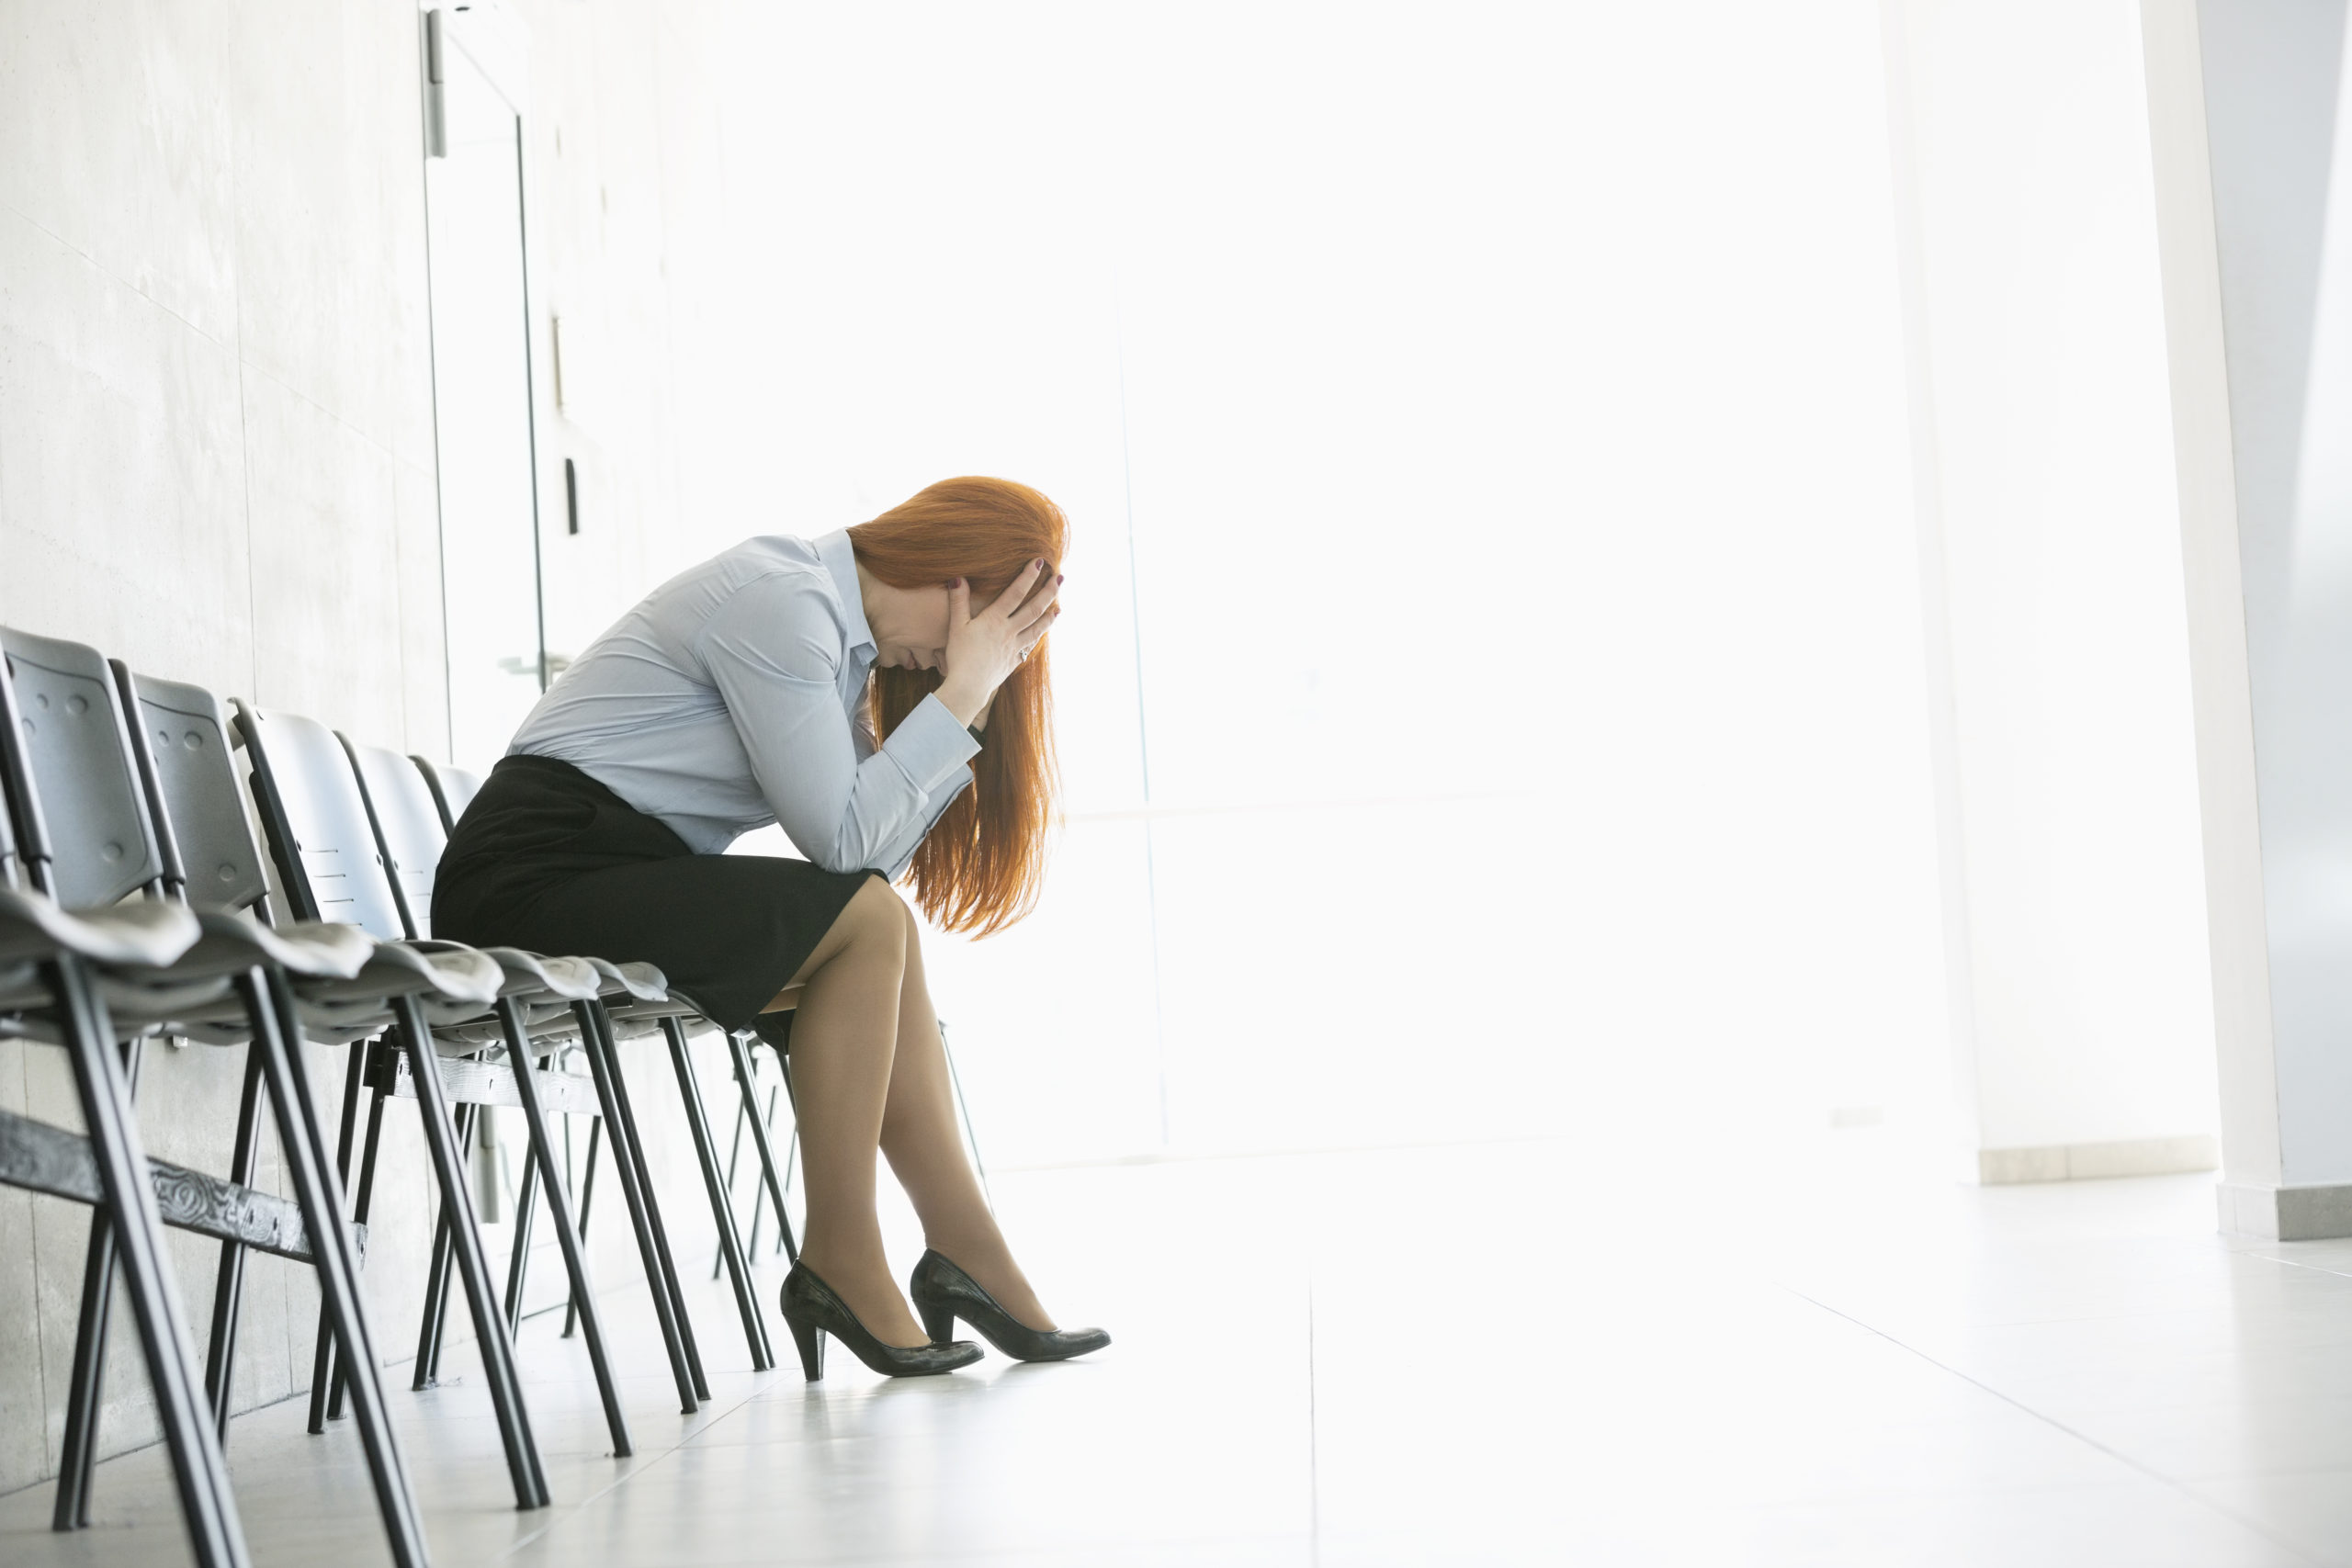 5-Cortisol Is A Silent Killer If Left Untreated